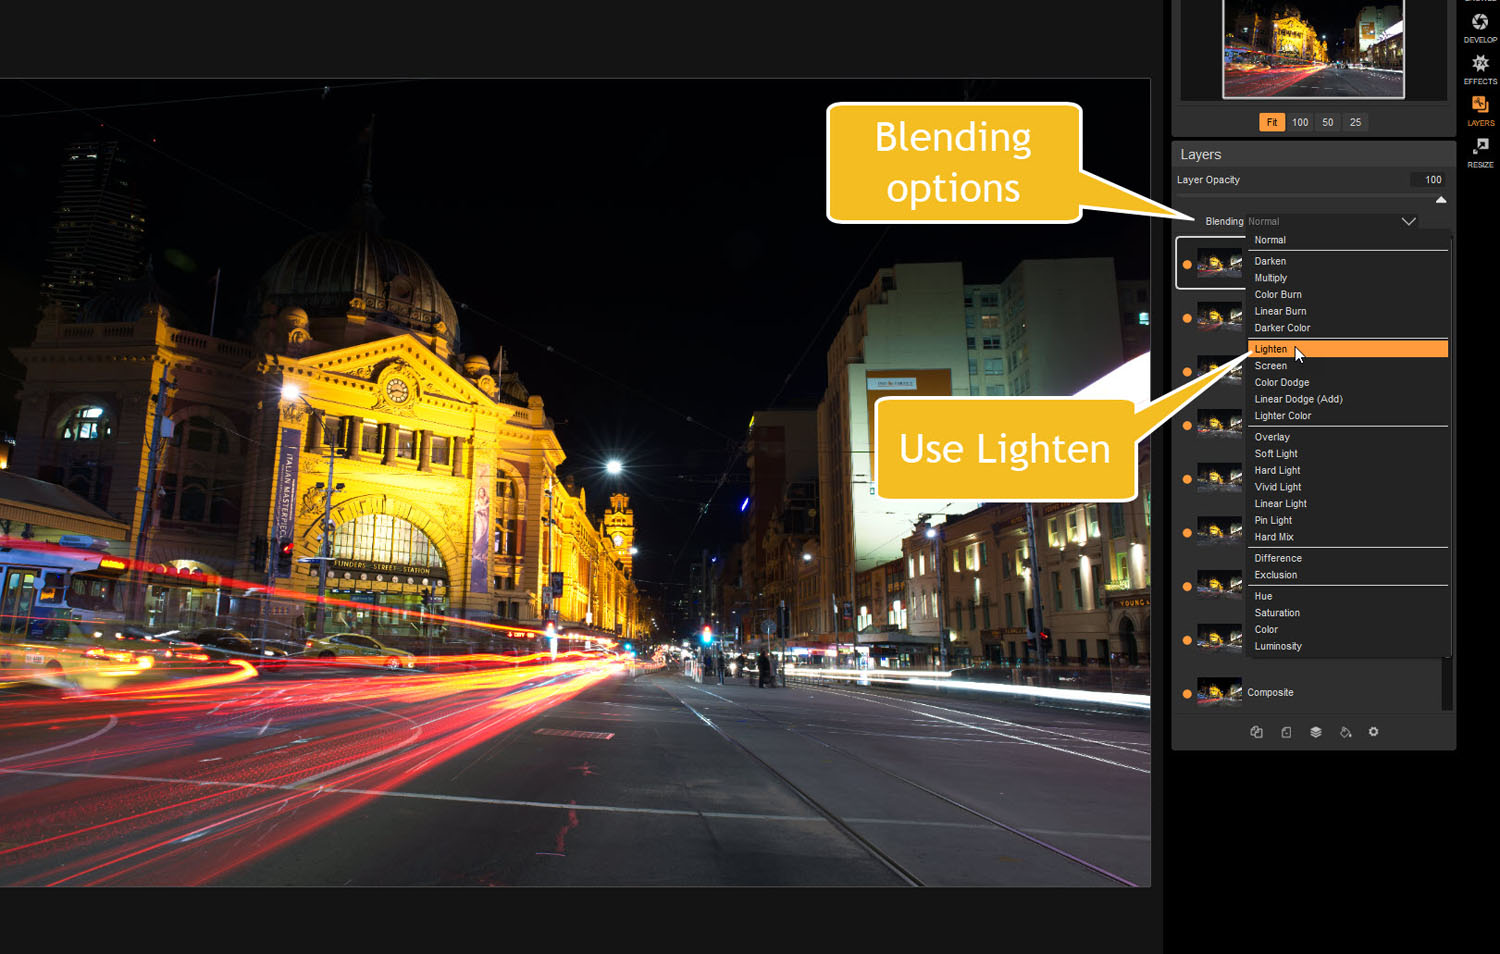 blending options - Tips for Processing Night Photography with ON1 Photo RAW 2018